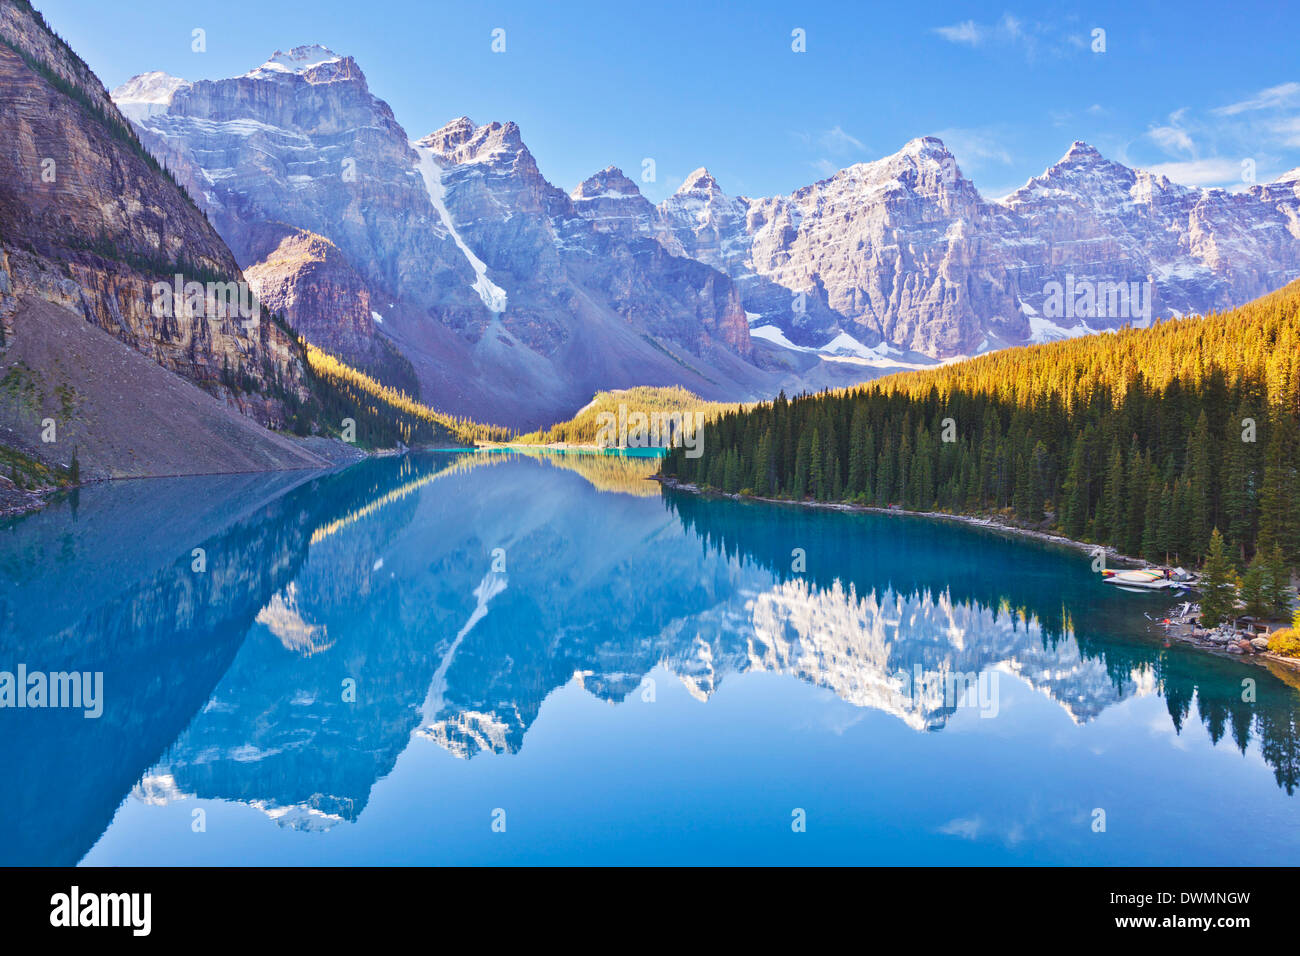 Moraine Lake reflections in the Valley of the Ten Peaks, Banff National Park, UNESCO Site, Alberta, Canadian Rockies, Canada - Stock Image